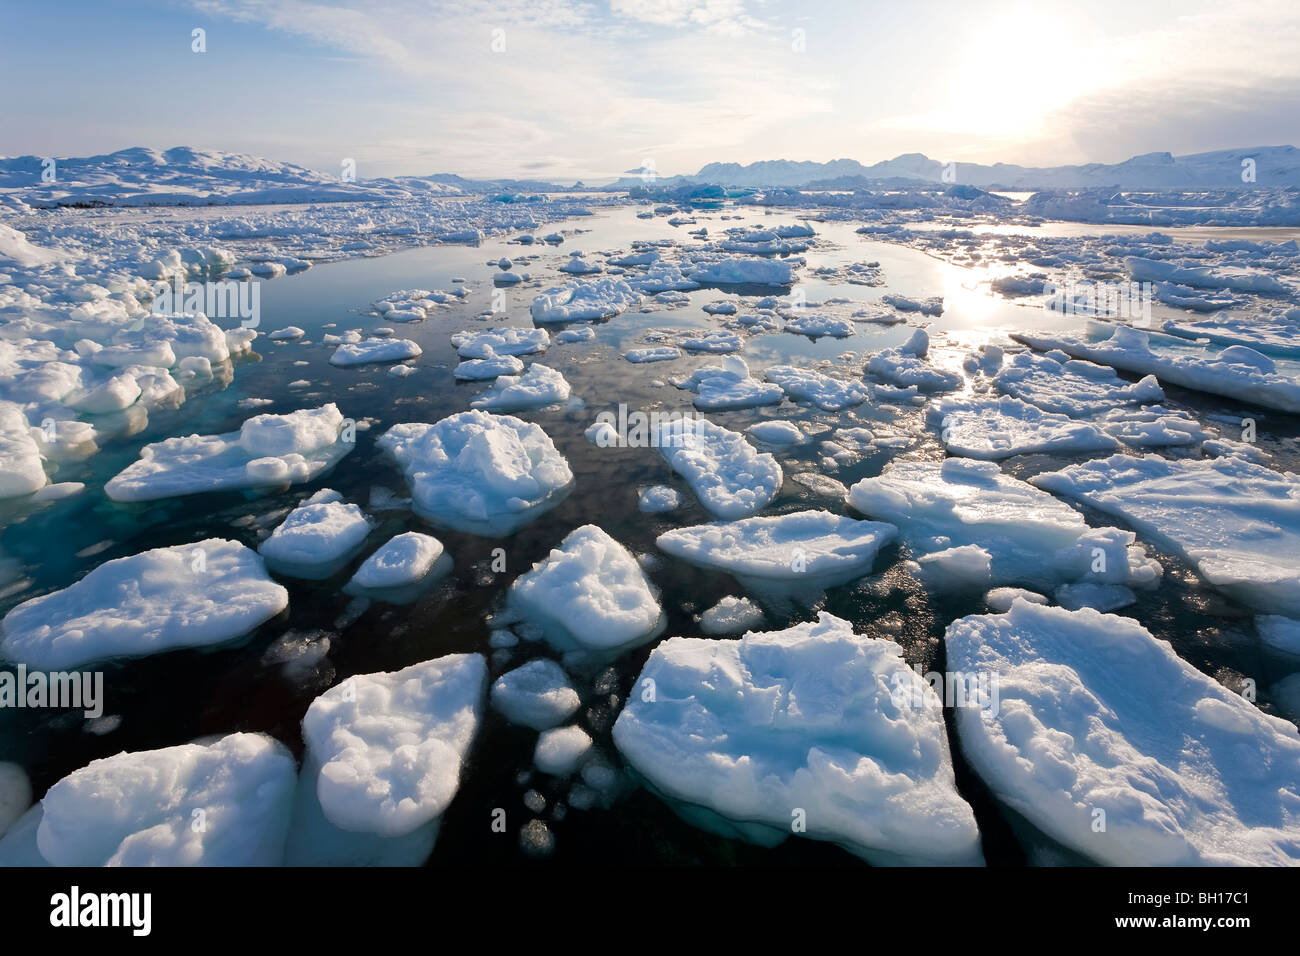 Tiniteqilaq and sea ice in fjord, E. Greenland - Stock Image